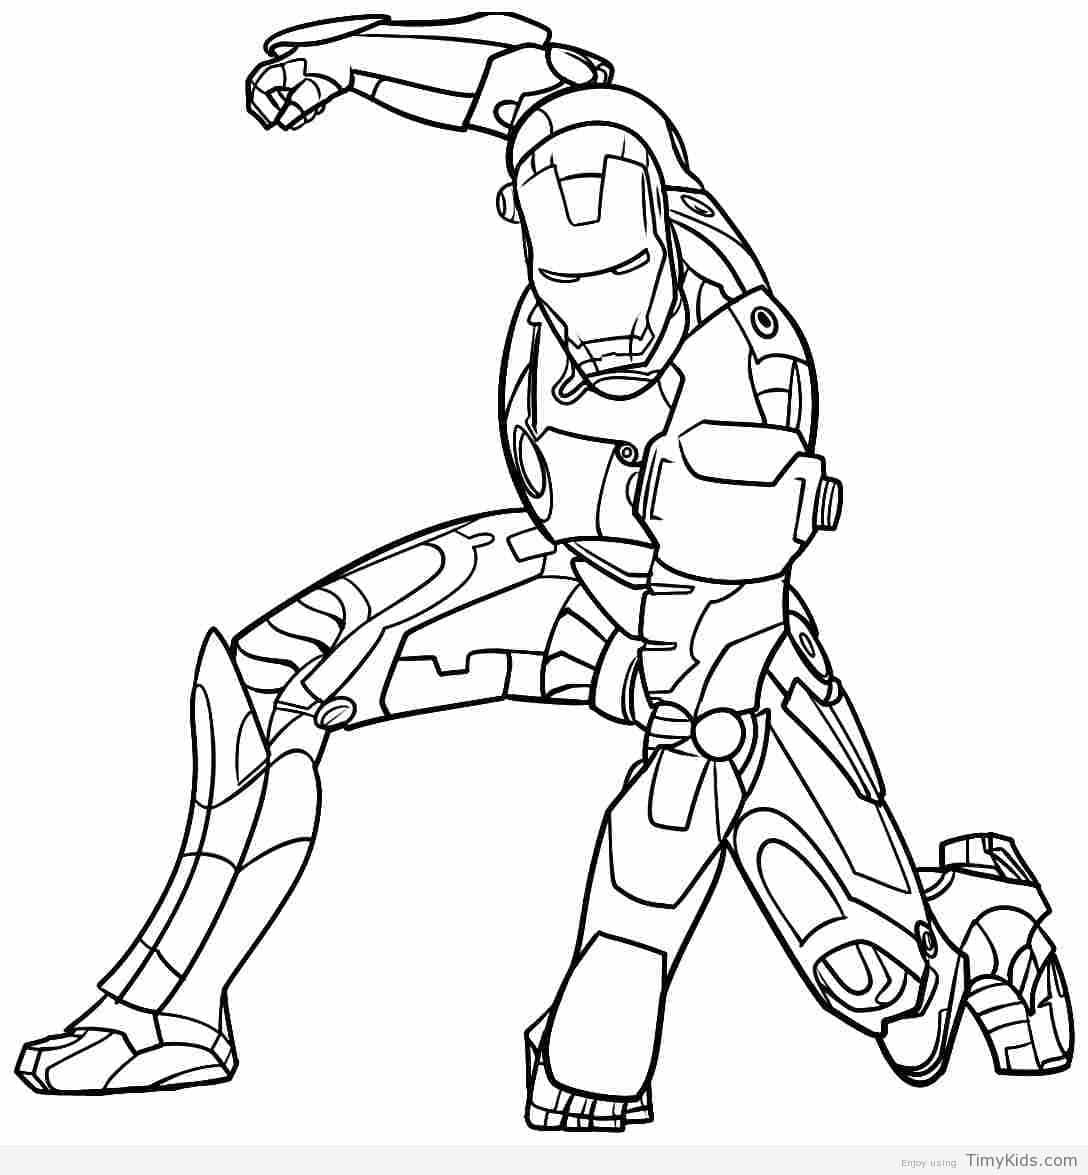 iron man colouring pages to print free printable iron man coloring pages for kids pages print man colouring to iron